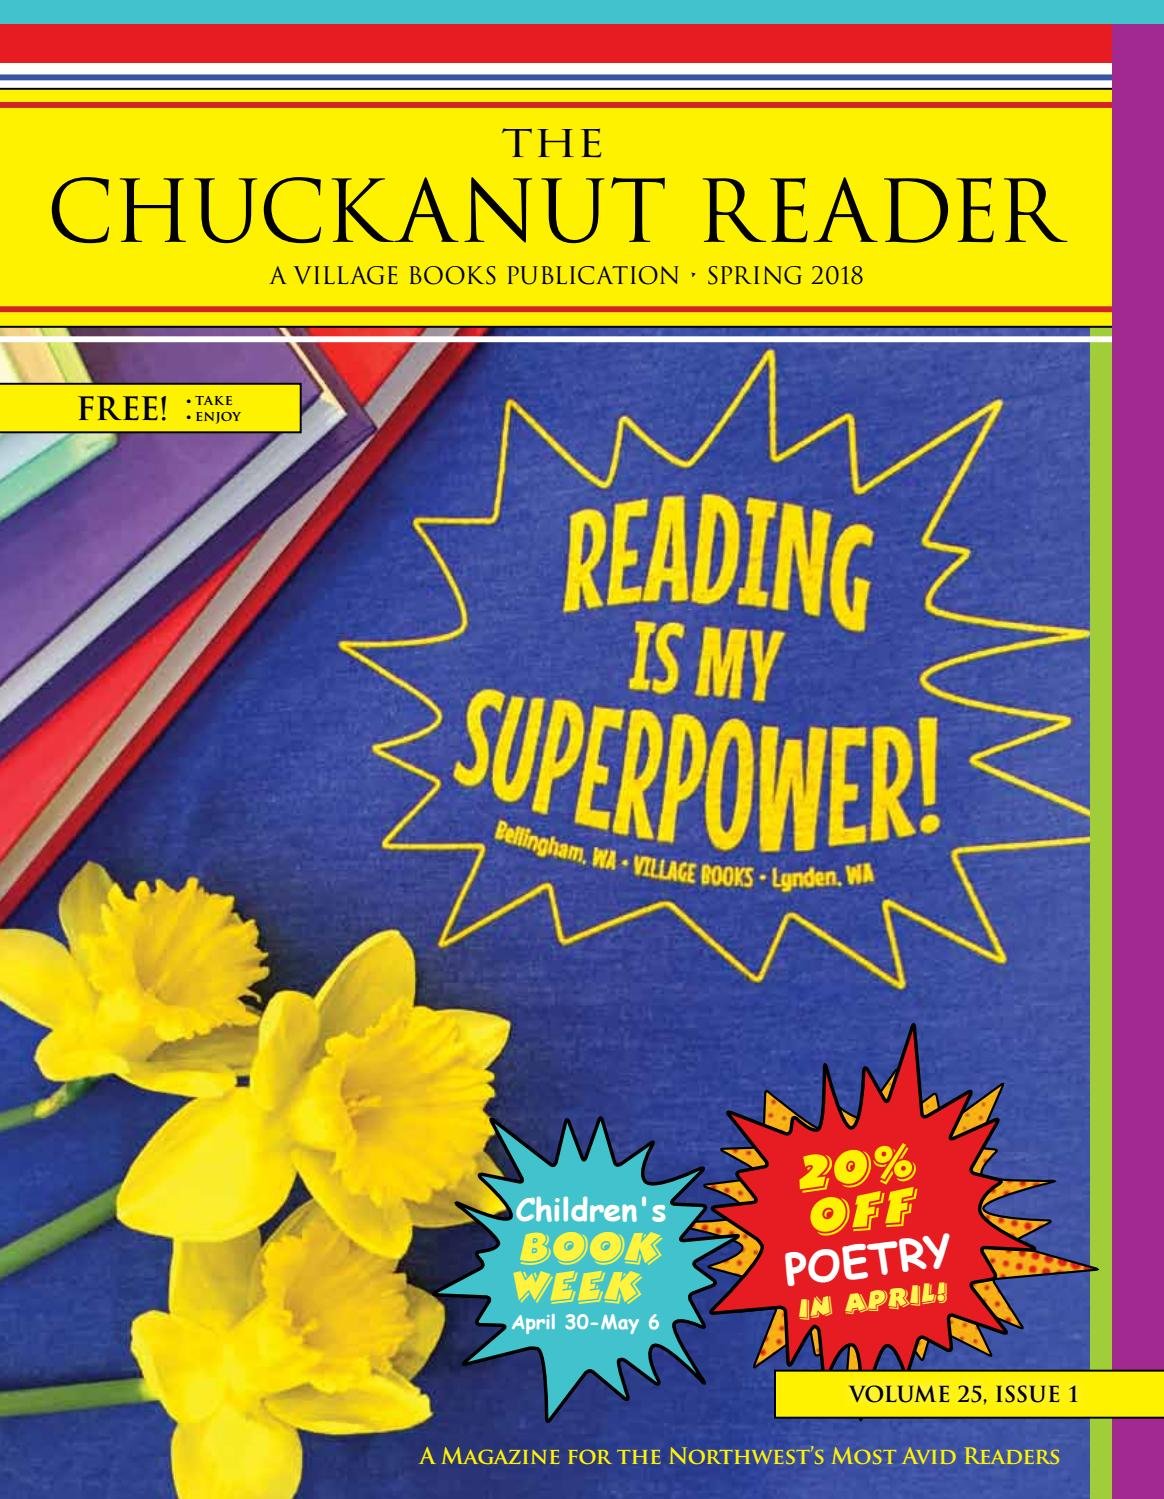 Chuckanut reader spring 2018 by village books paper dreams issuu fandeluxe Images